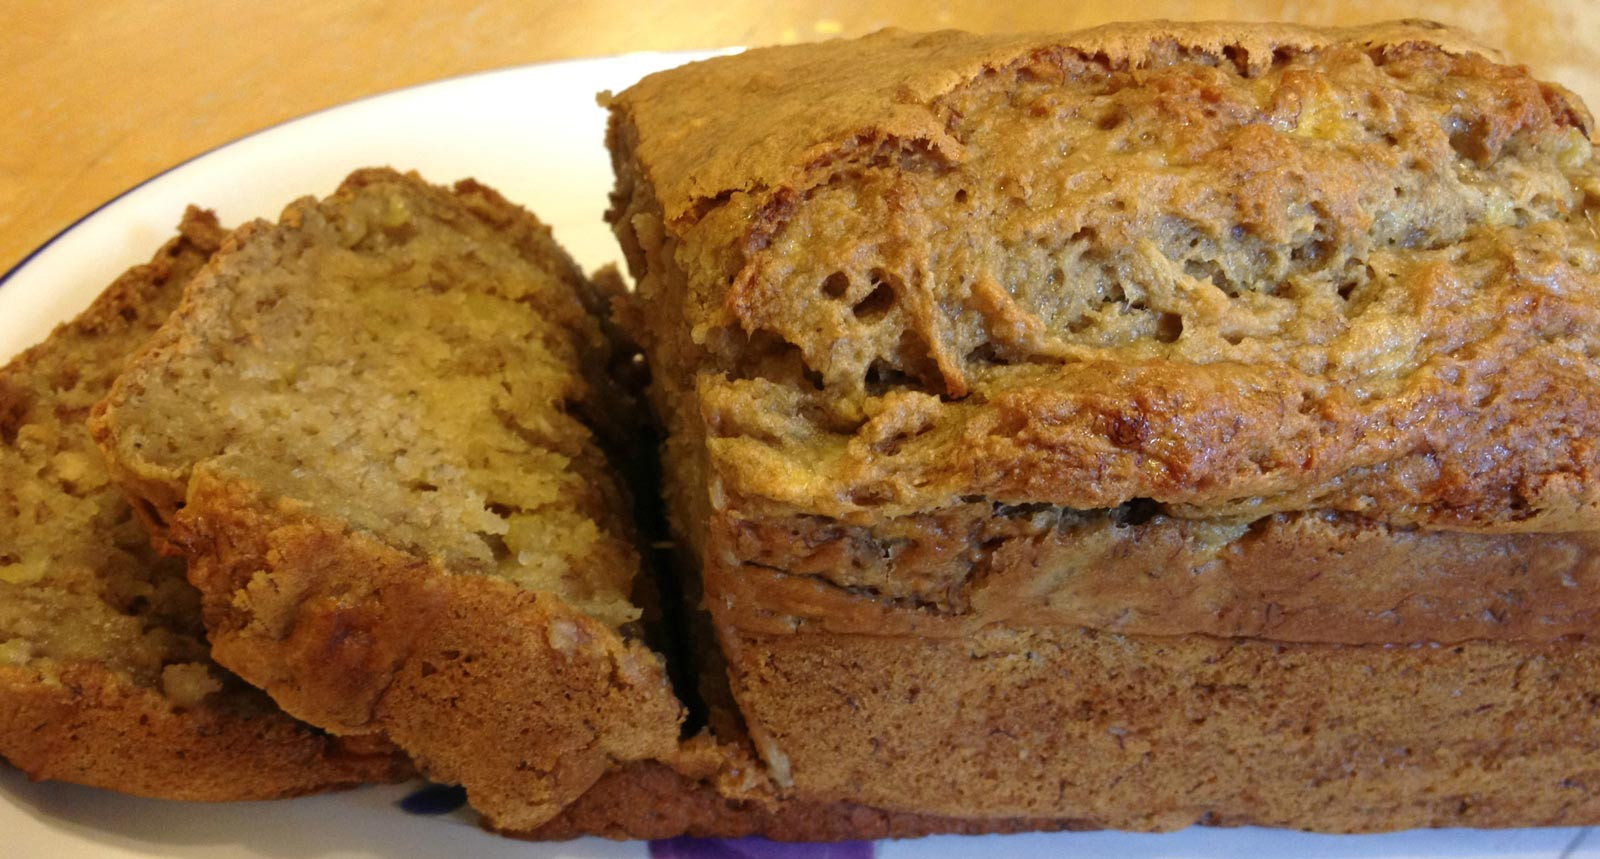 Applesauce Bread Healthy  PHOTOS 20 Bread Flavours You Can Make At Home [RECIPES